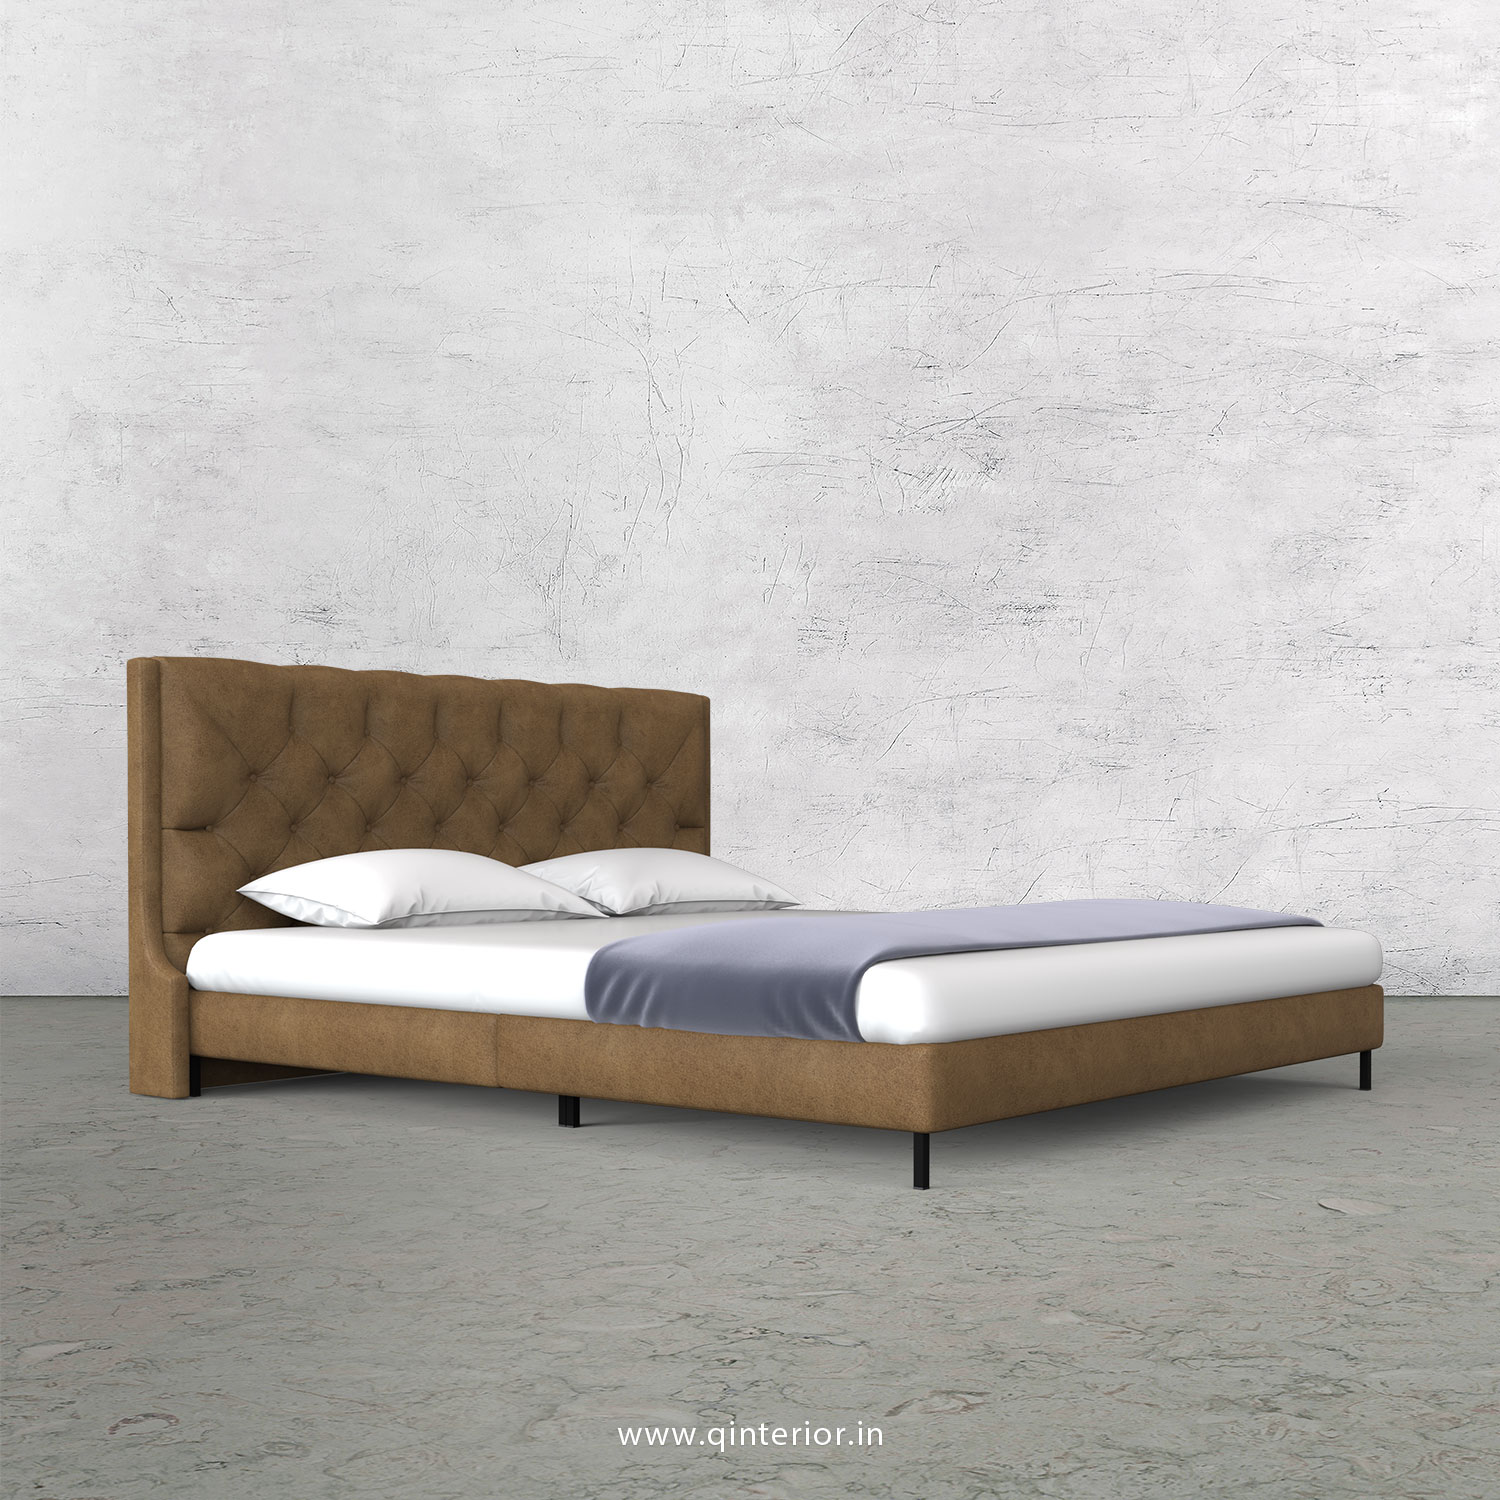 Scorpius King Size Bed in Fab Leather Fabric - KBD003 FL02